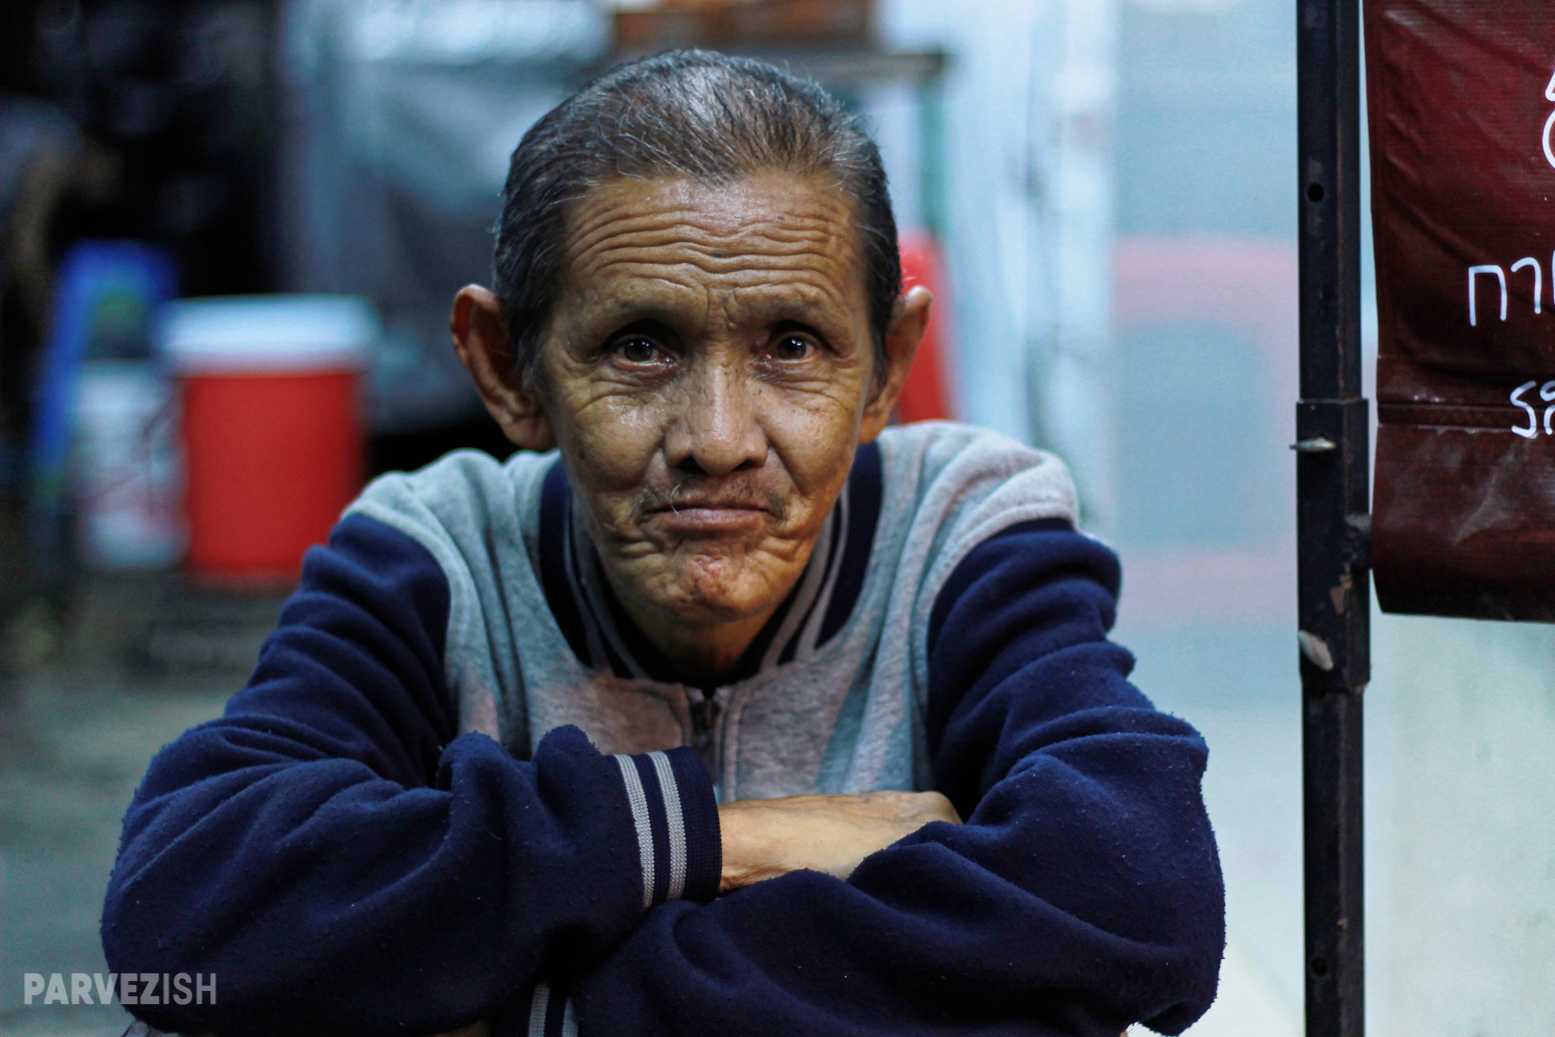 An Aged Man Poses for a Photograph in Streets of Bangkok